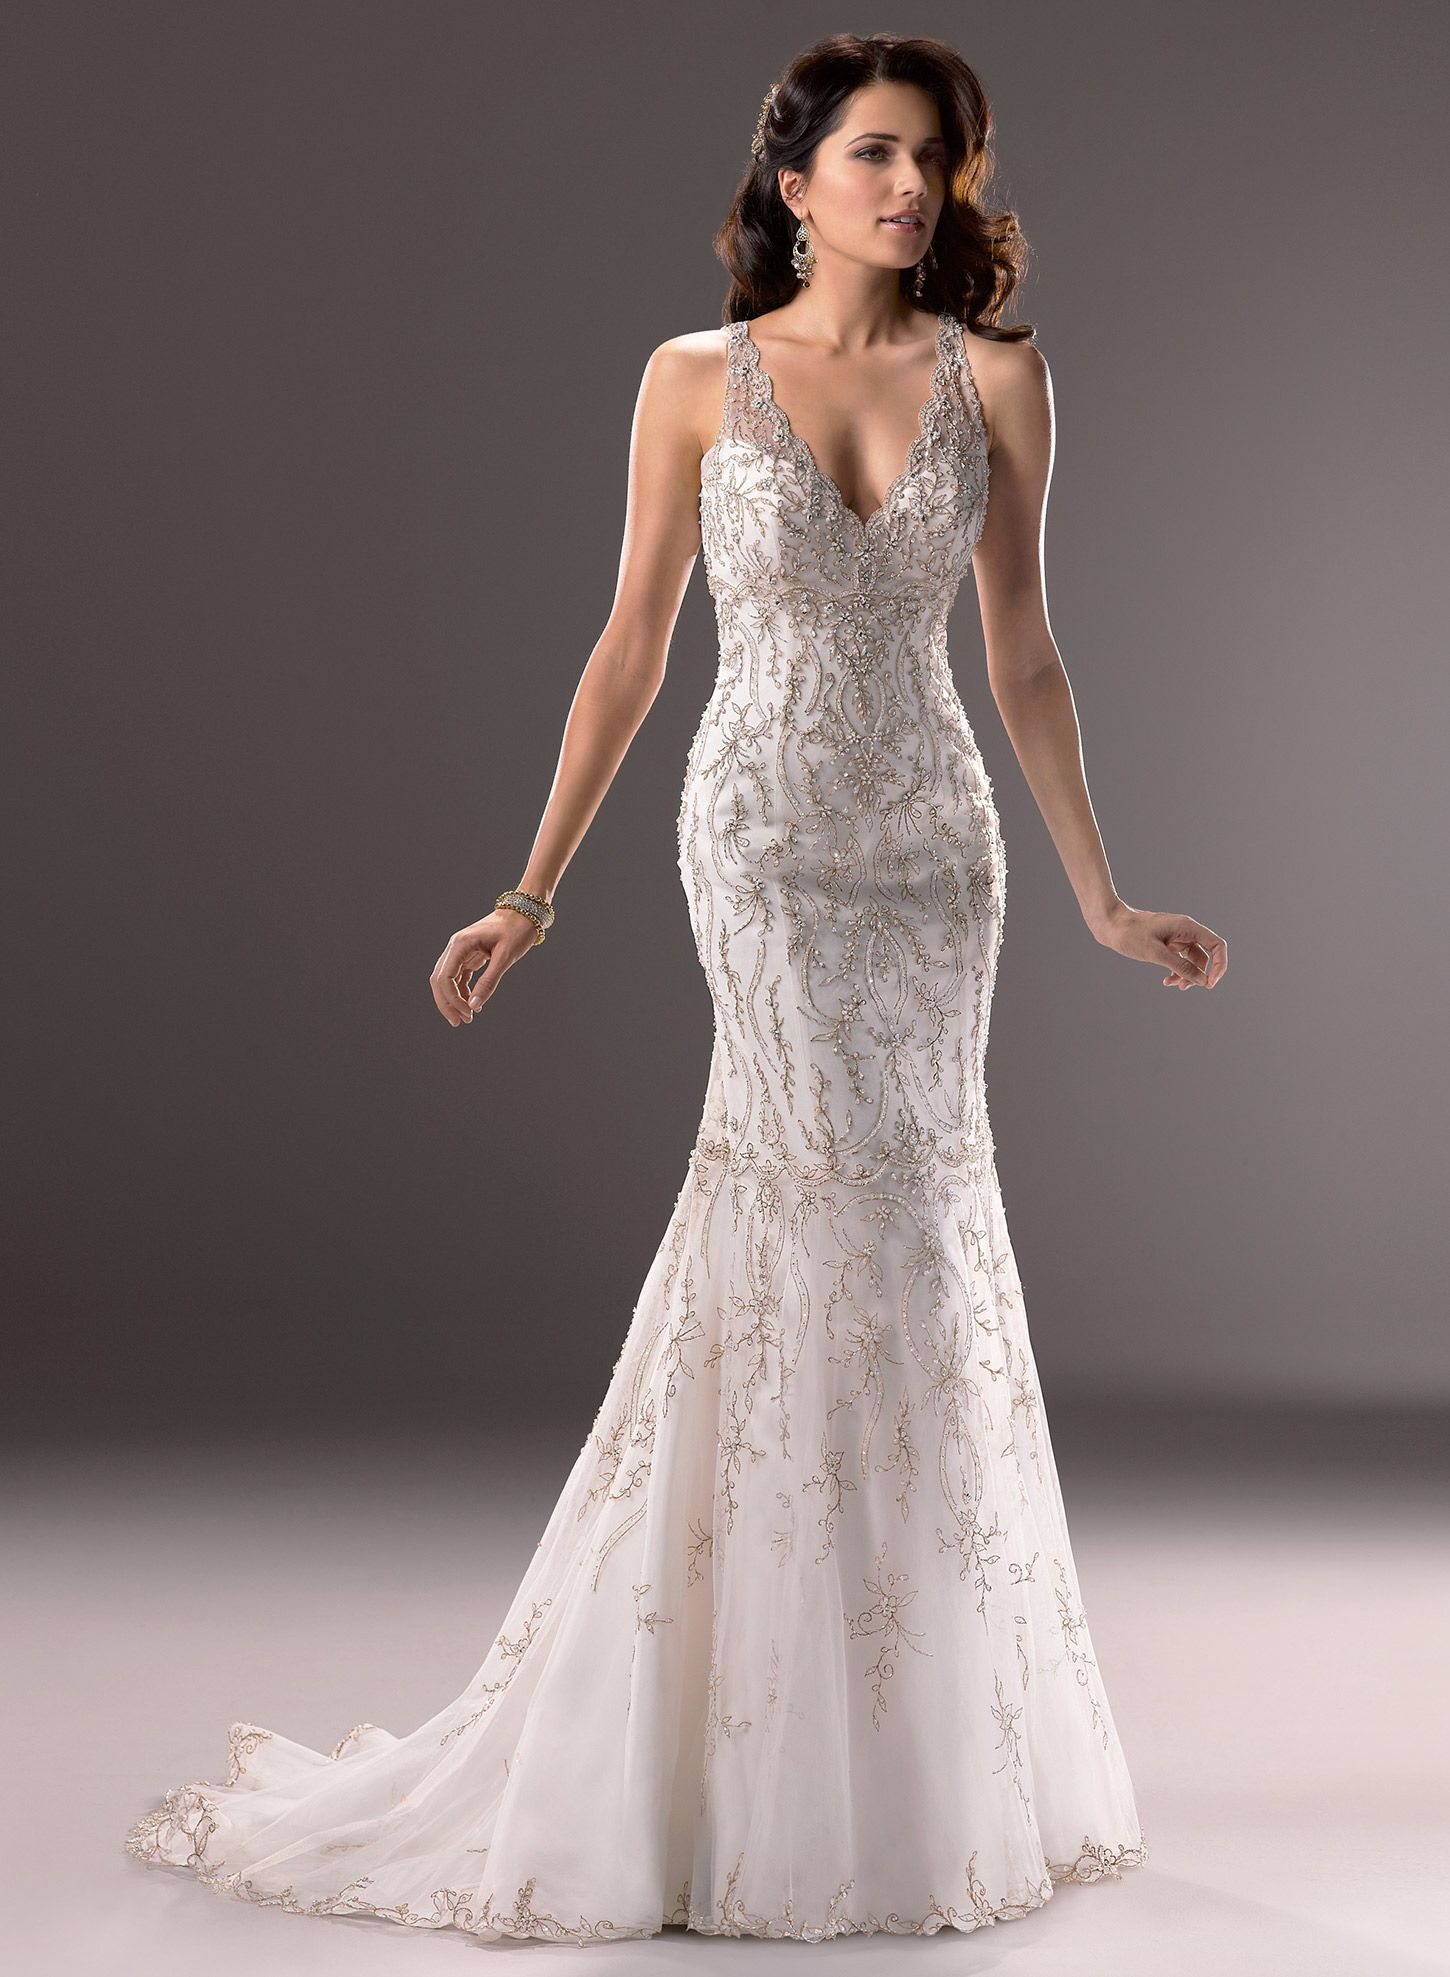 Blakely by maggie sottero wedding dresses wedding ideas